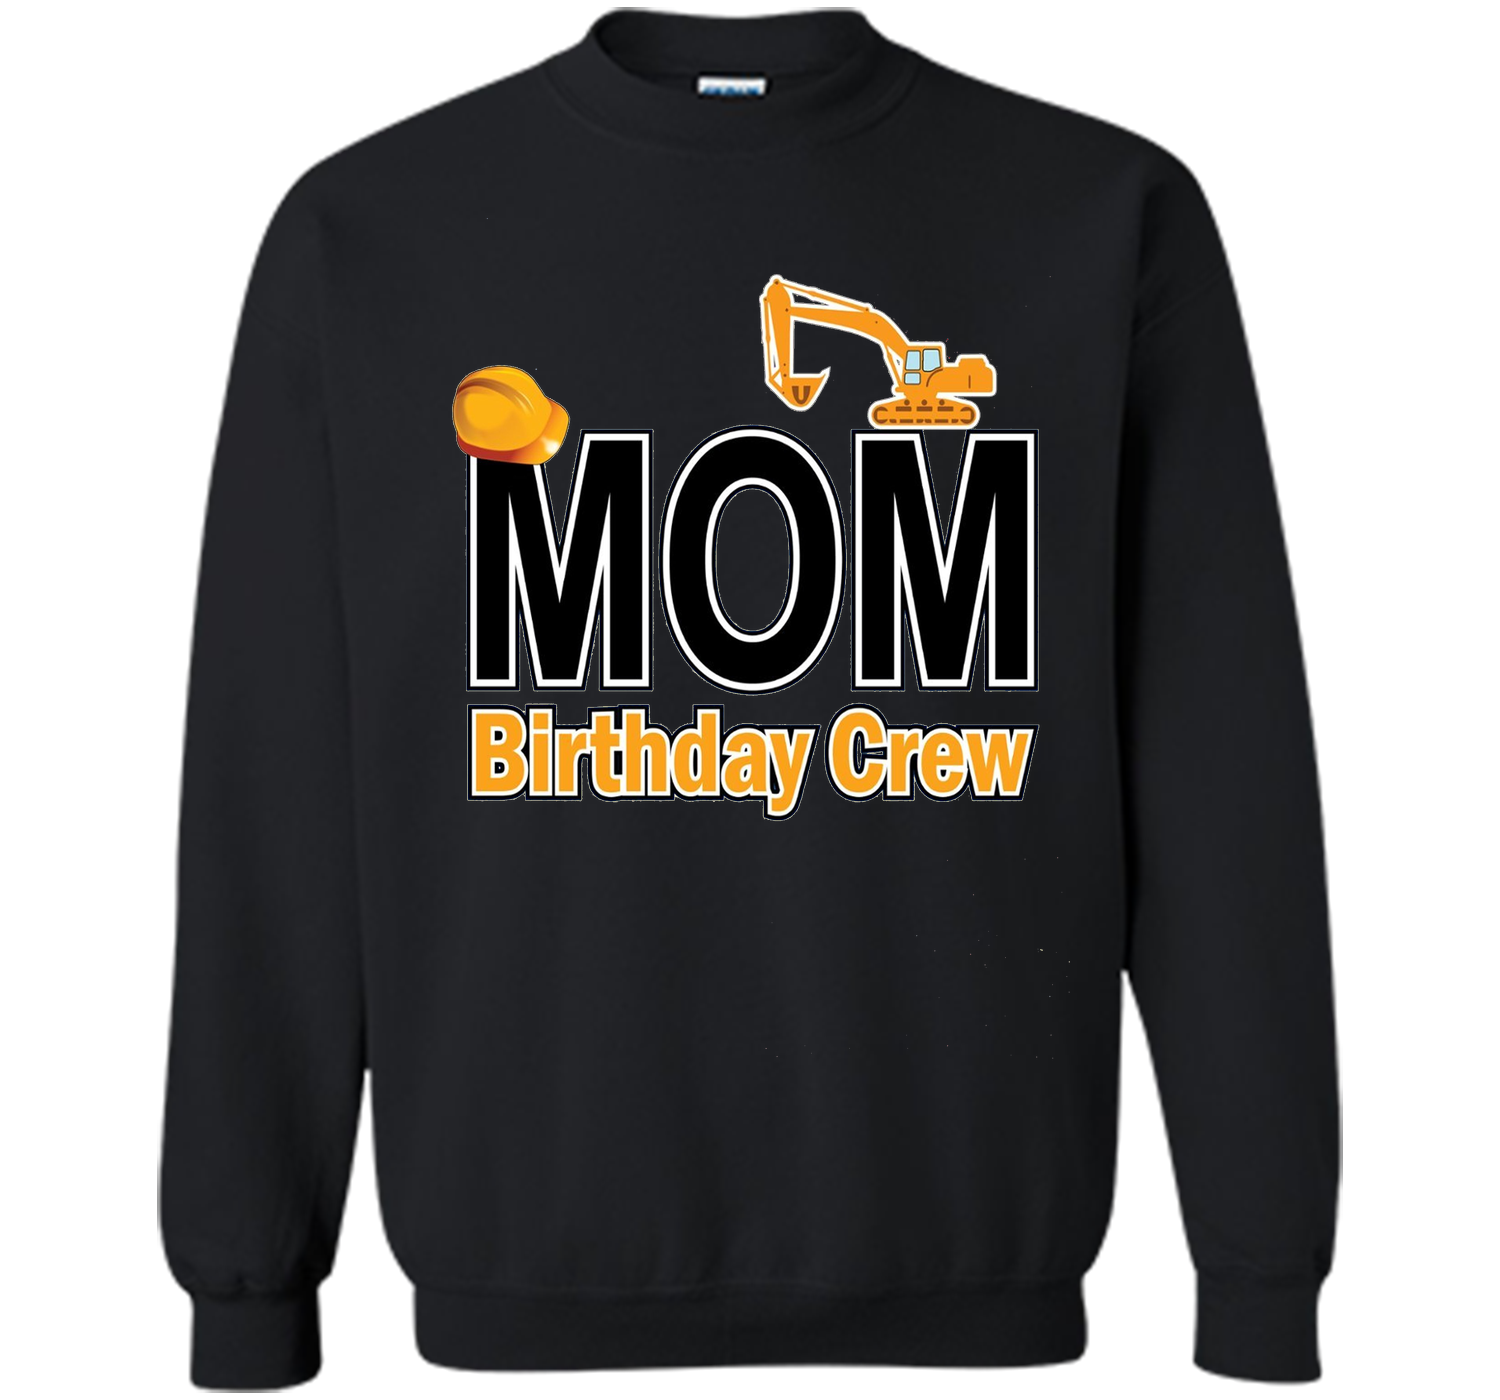 Mom Birthday Crew Shirts For Construction Party Cool Shirt